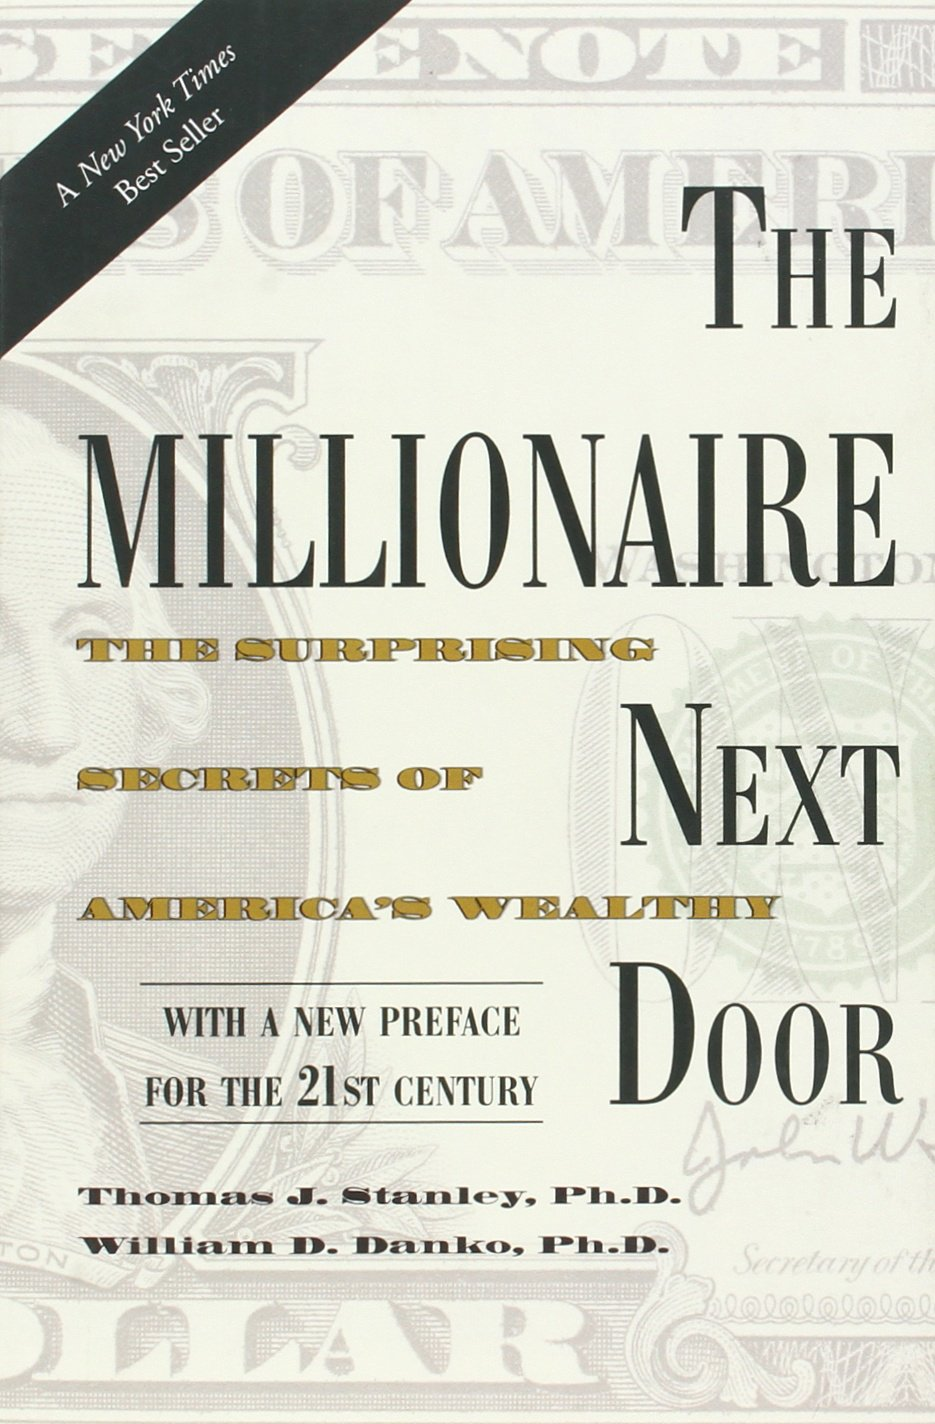 The Millioniare Next Door